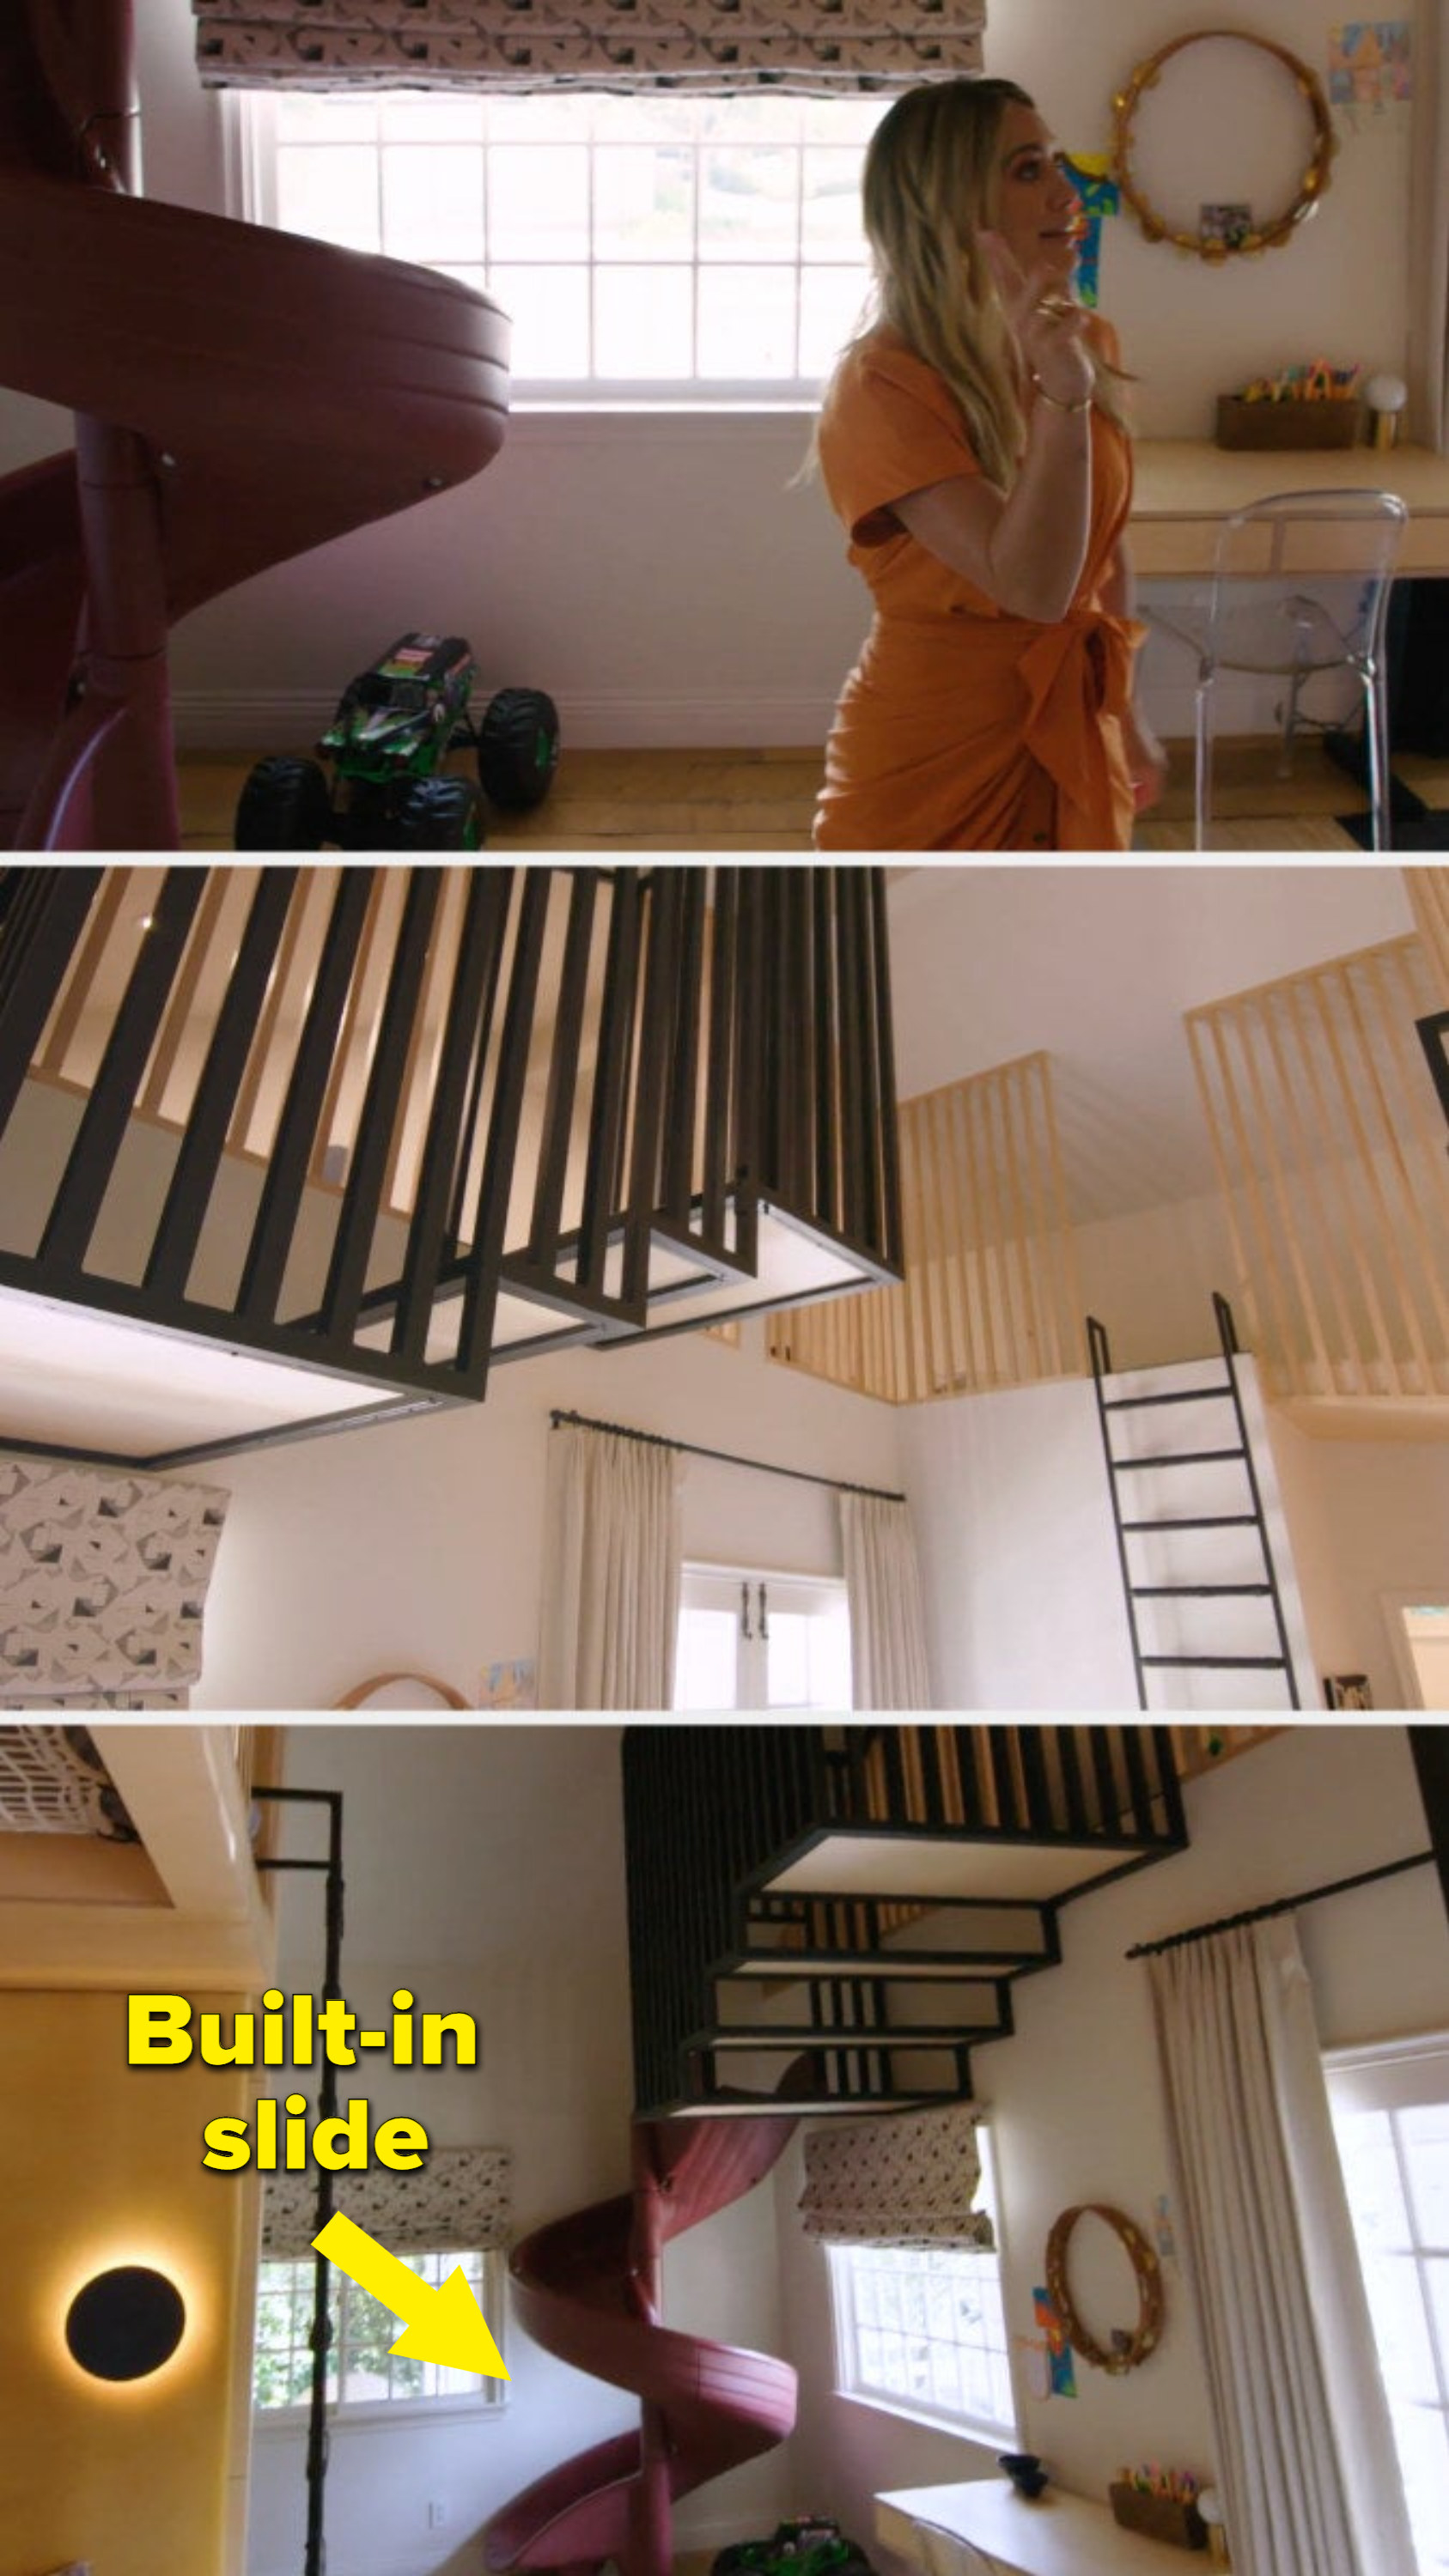 The bedroom, with a built in slide, play net, and ladder to a bunch of different loft spaces